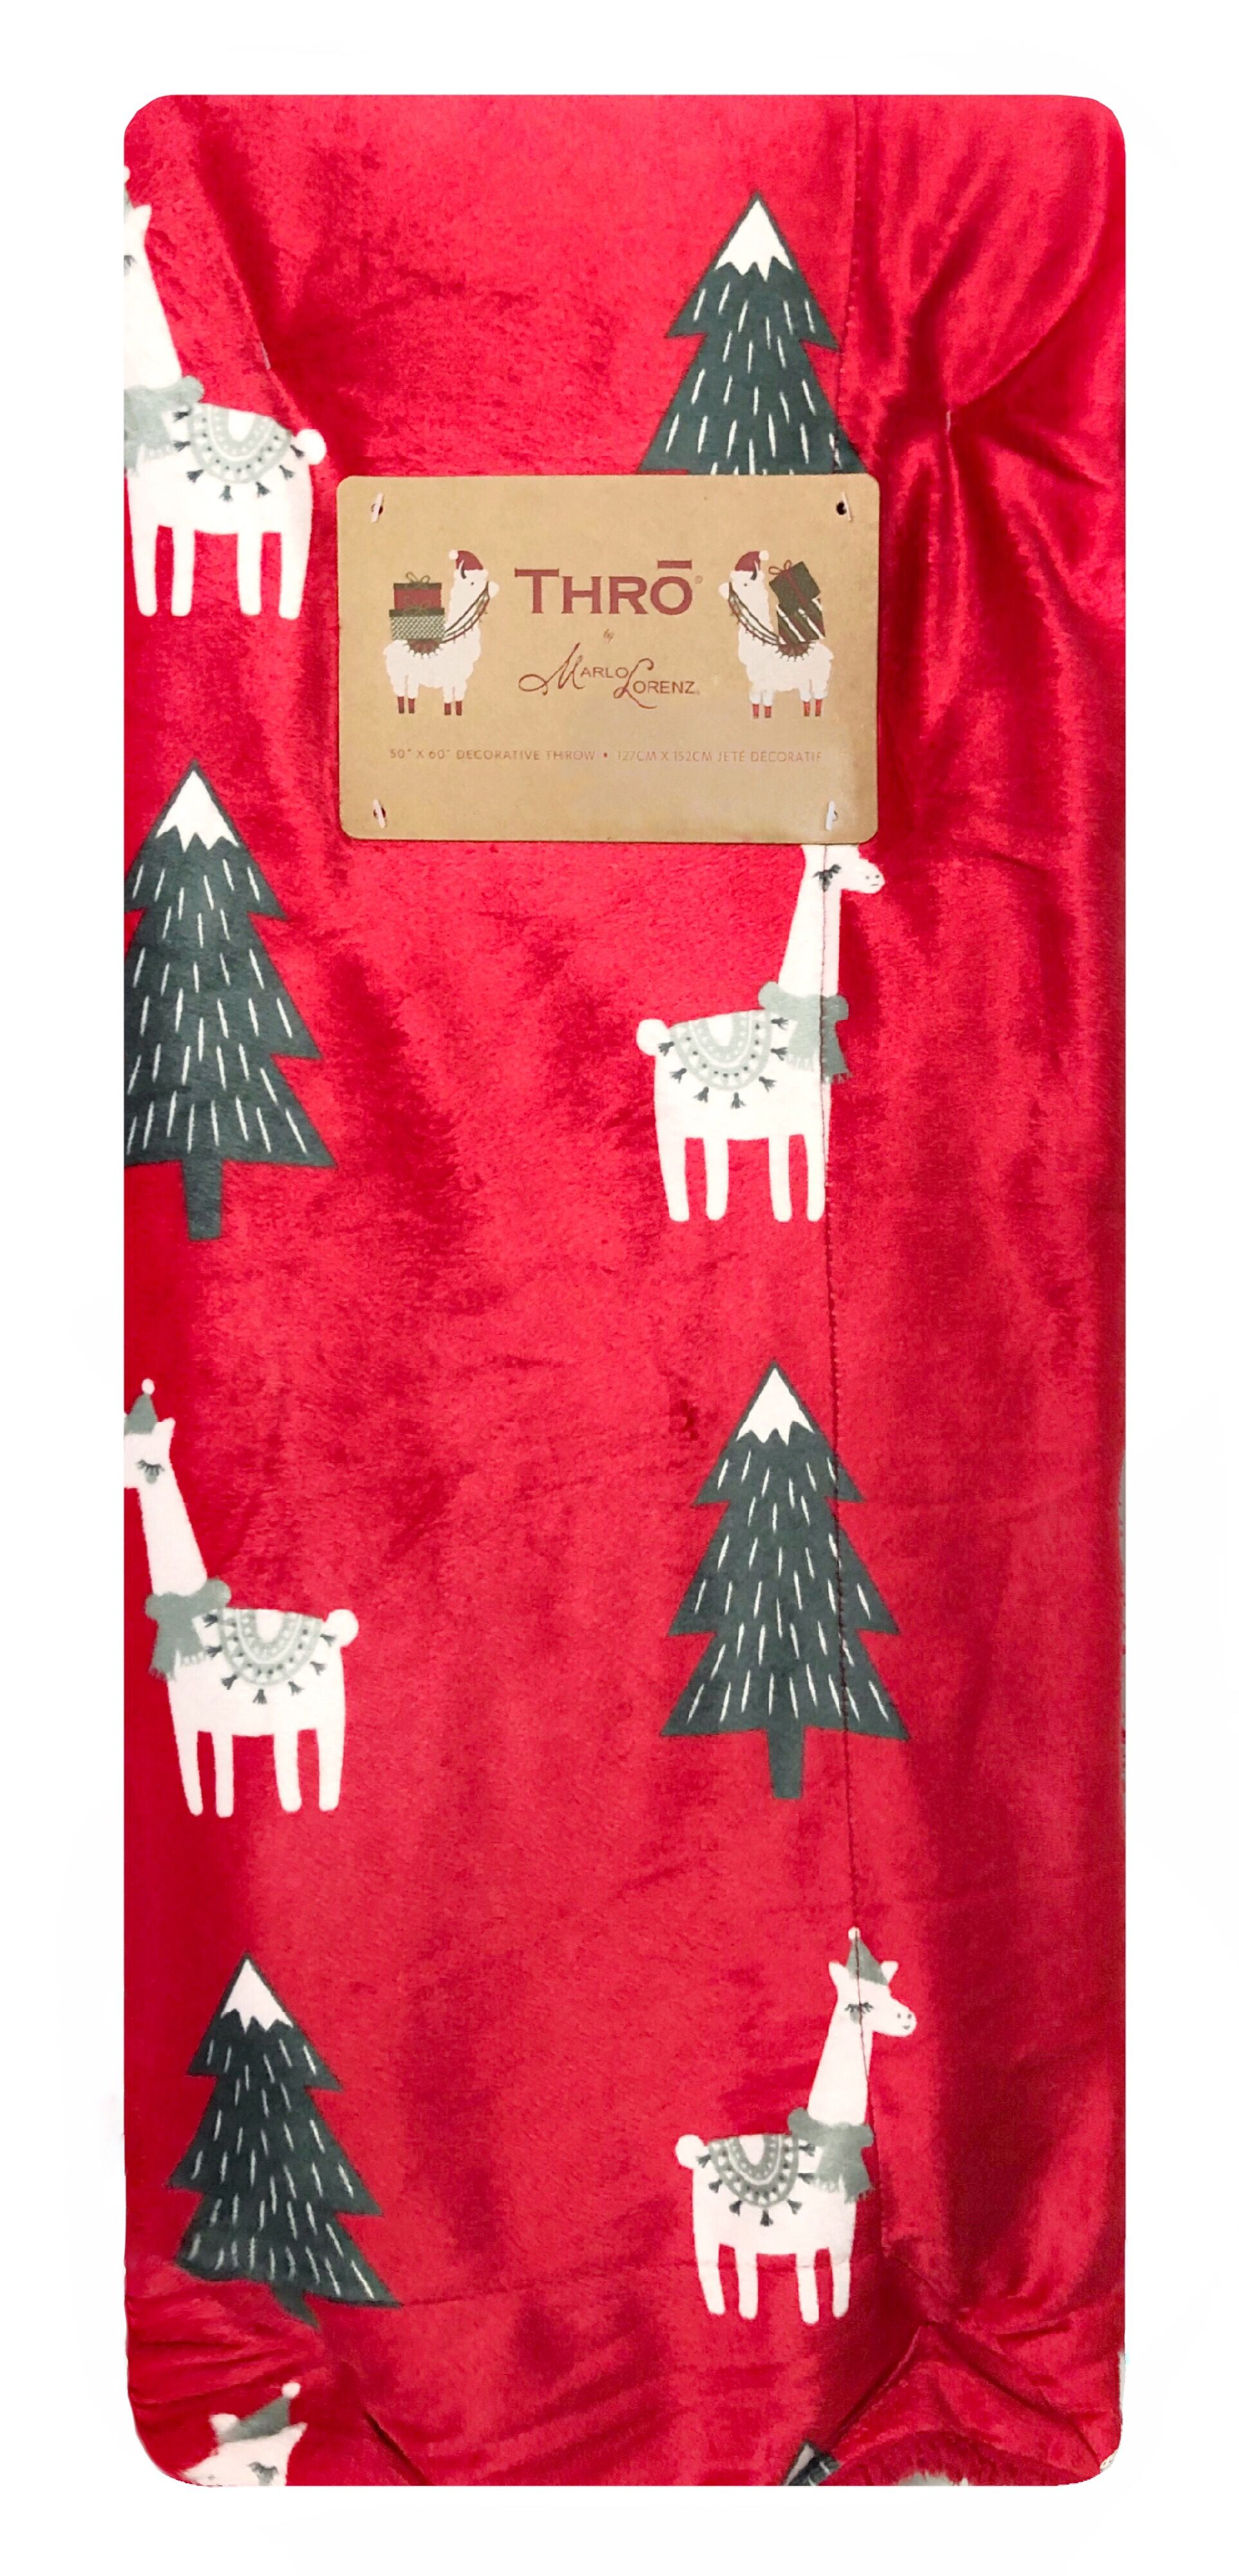 Winter Holiday Llamas Decorative Christmas Holiday Plush Throw Blanket 50 x 70